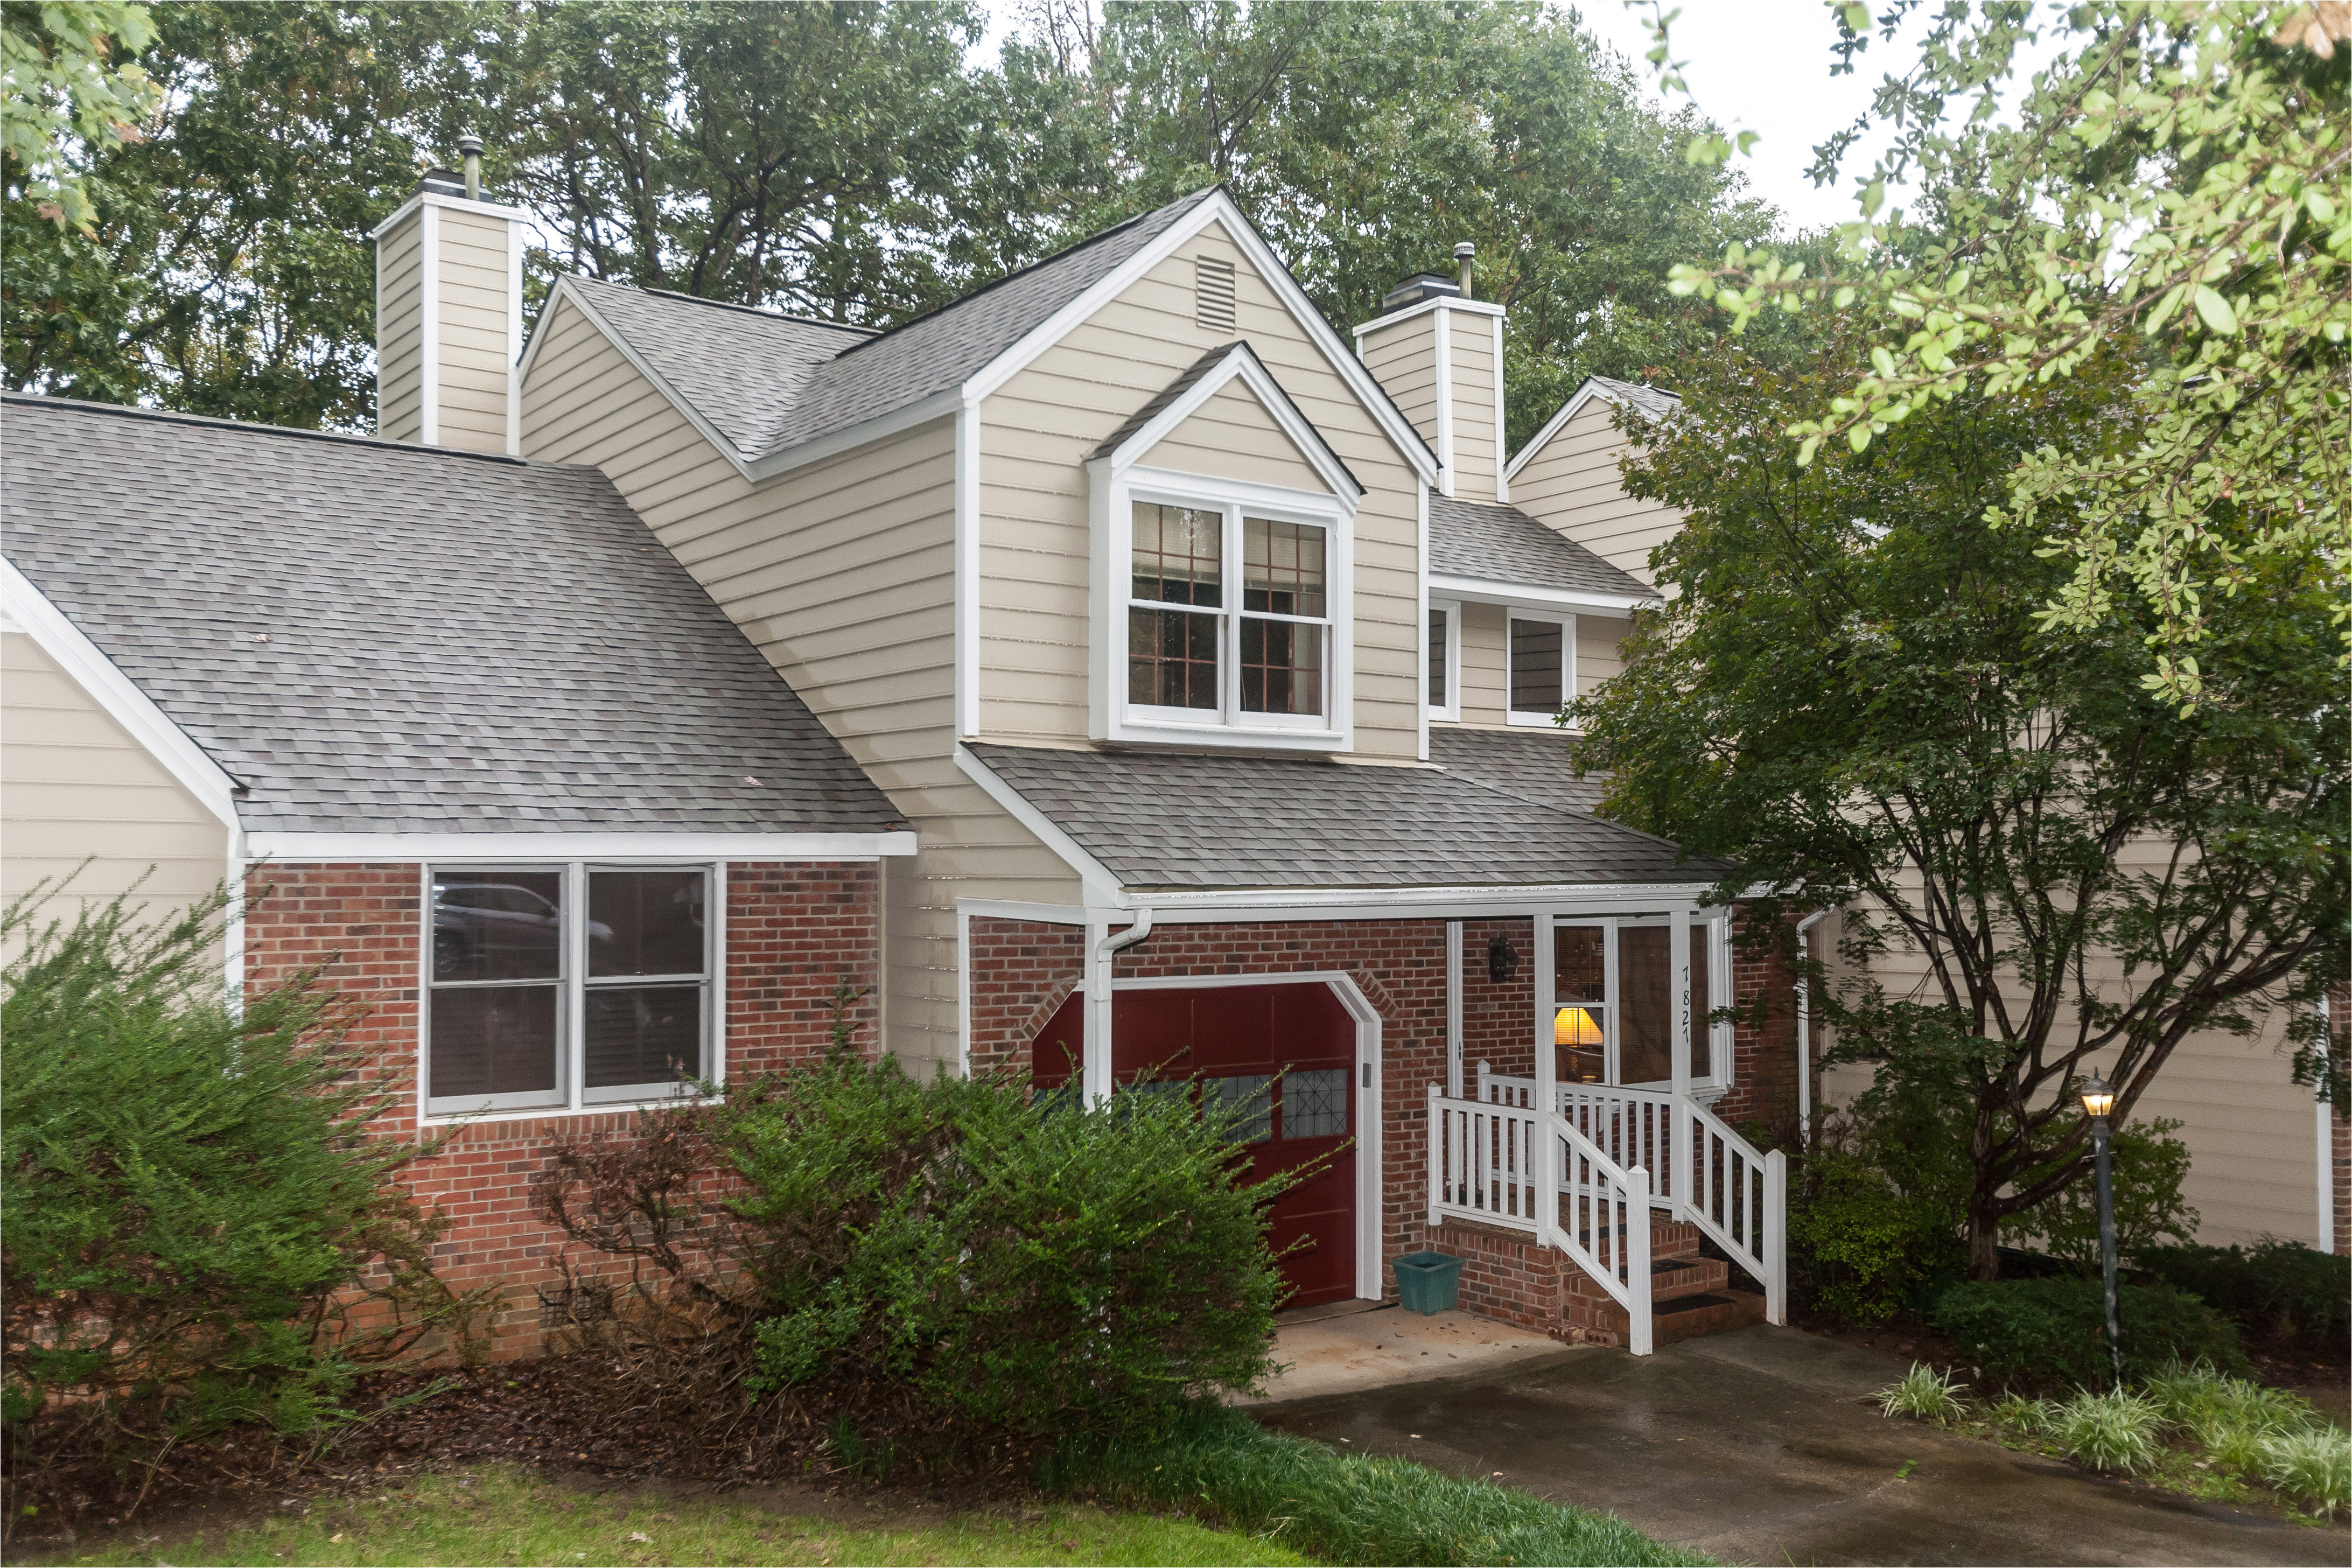 thank you so much for choosing to work with our team to sell your adorable townhome in stonehenge